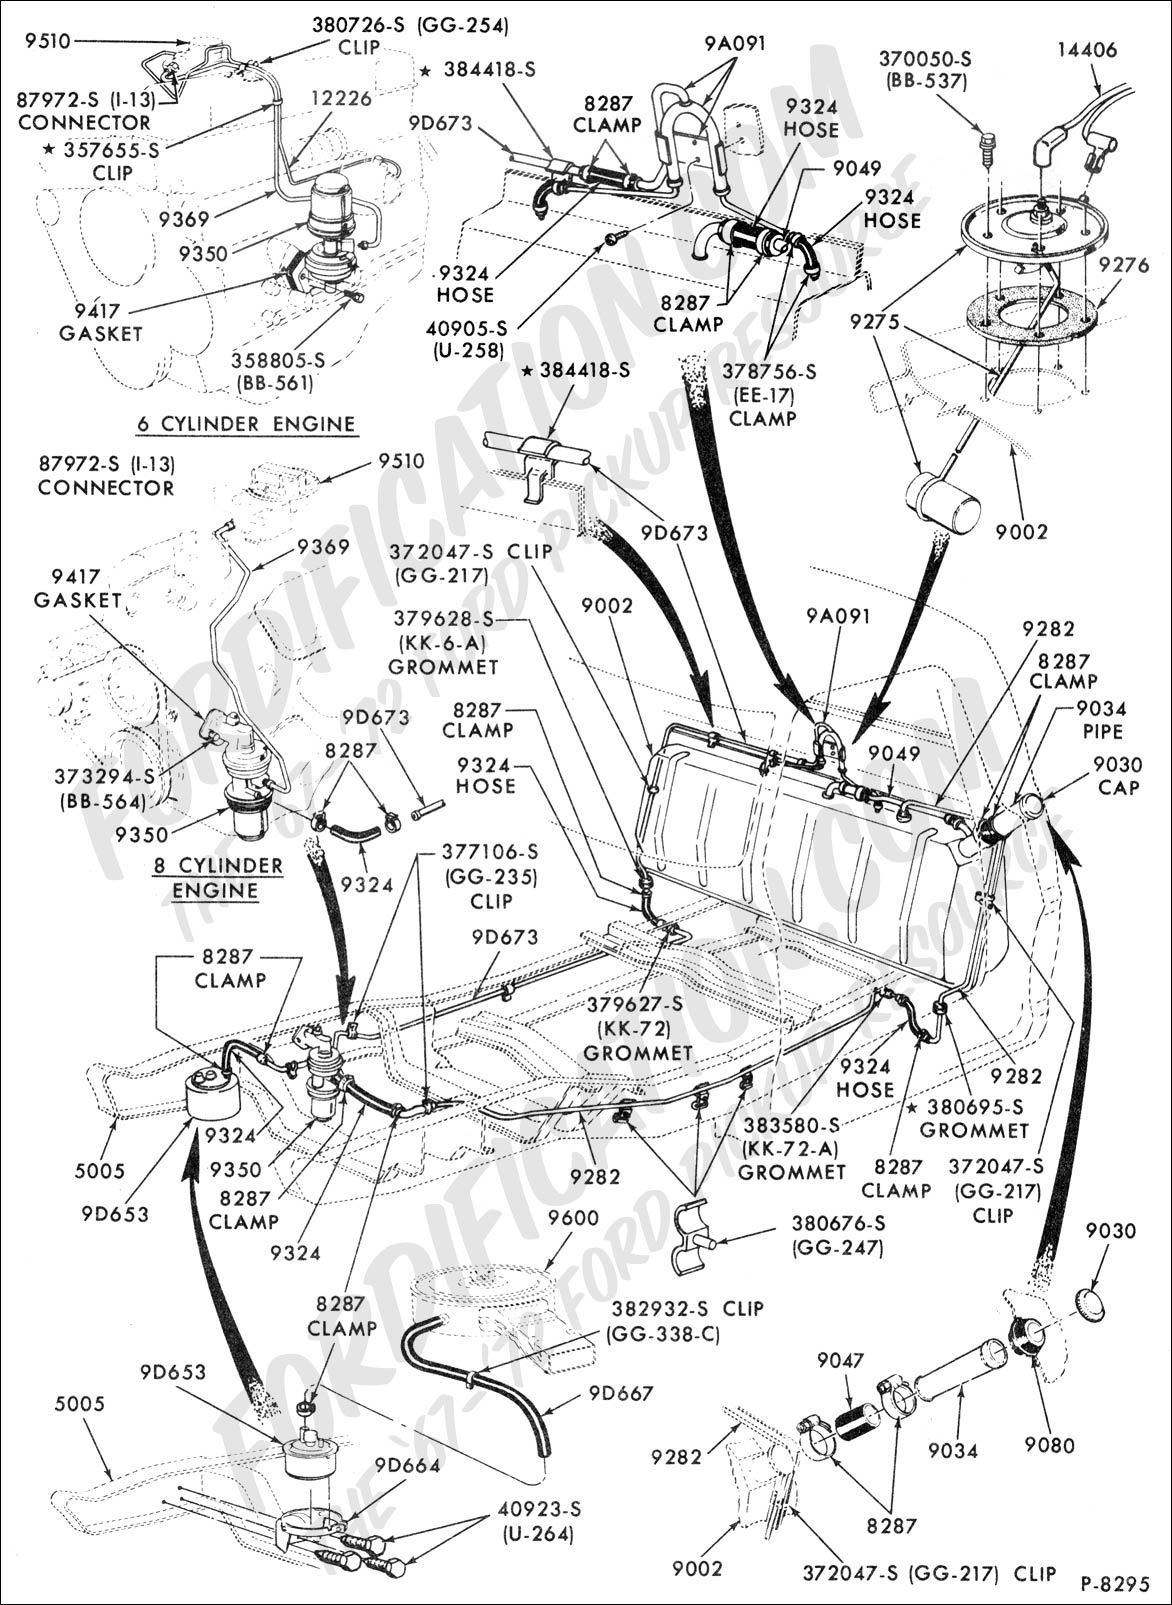 Chevrolet 6 Cyl Engine Vacuum Routing Diagrams Trusted Wiring Diagram 1983 Chevy Truck Line 350